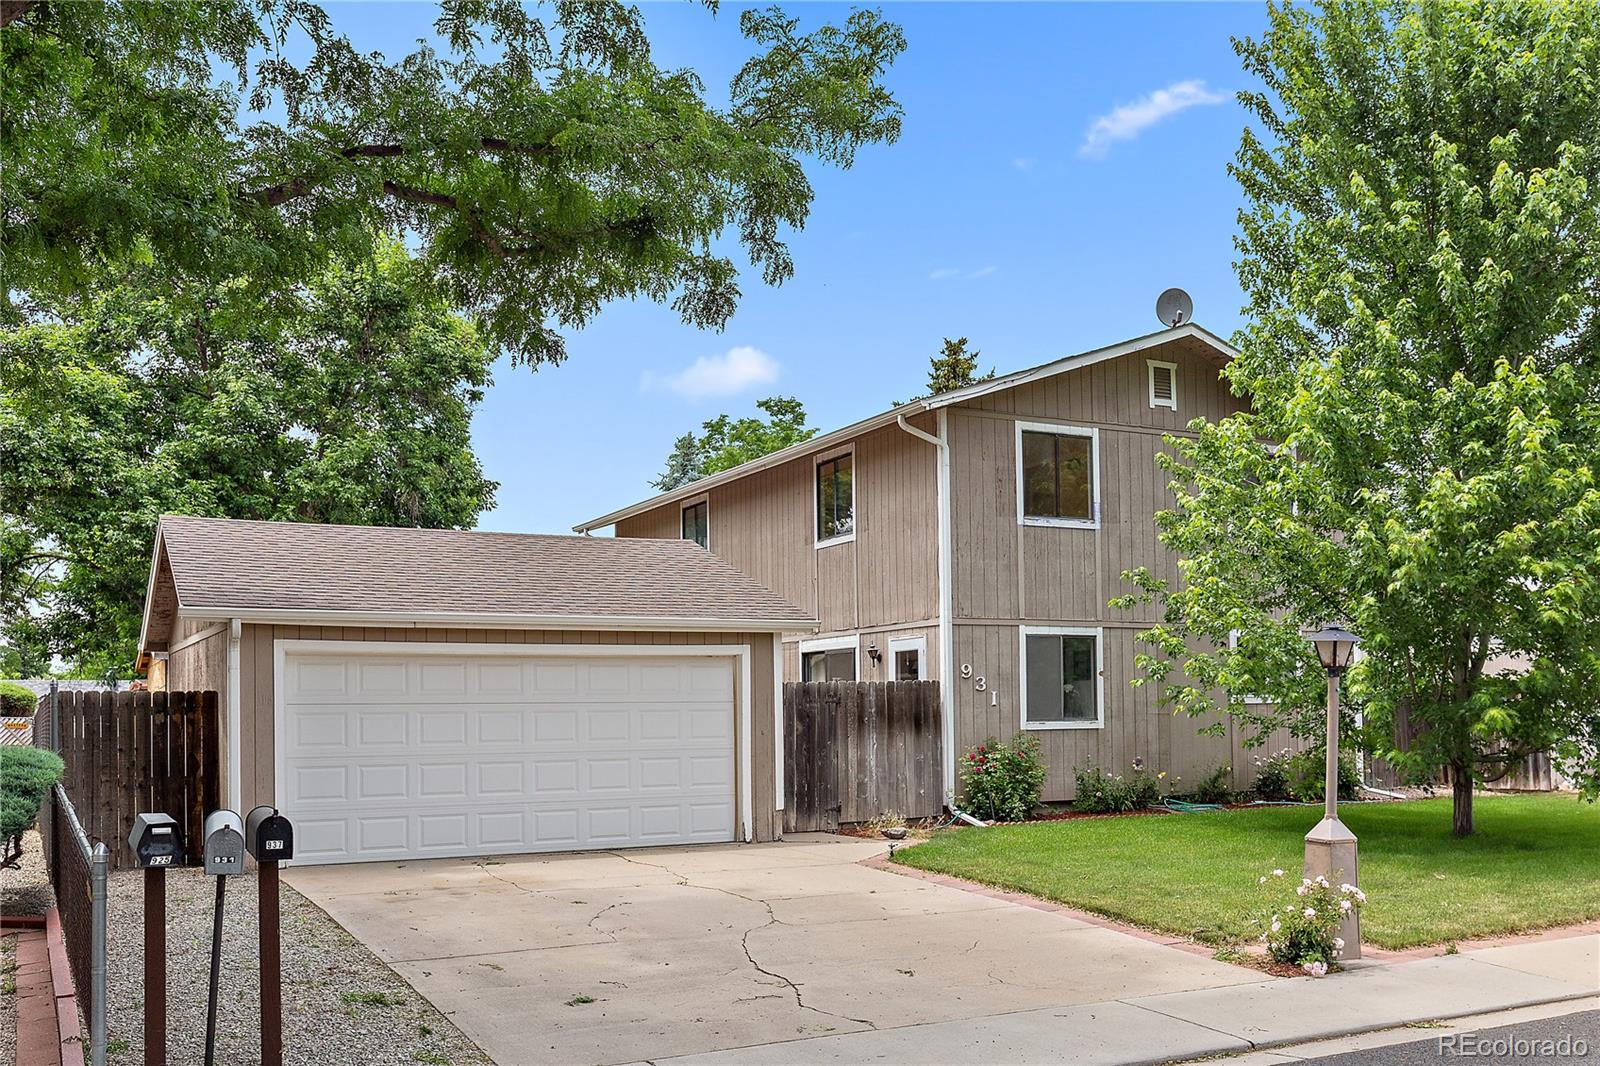 MLS# 4362154 - 1 - 931 Timber Court, Longmont, CO 80504